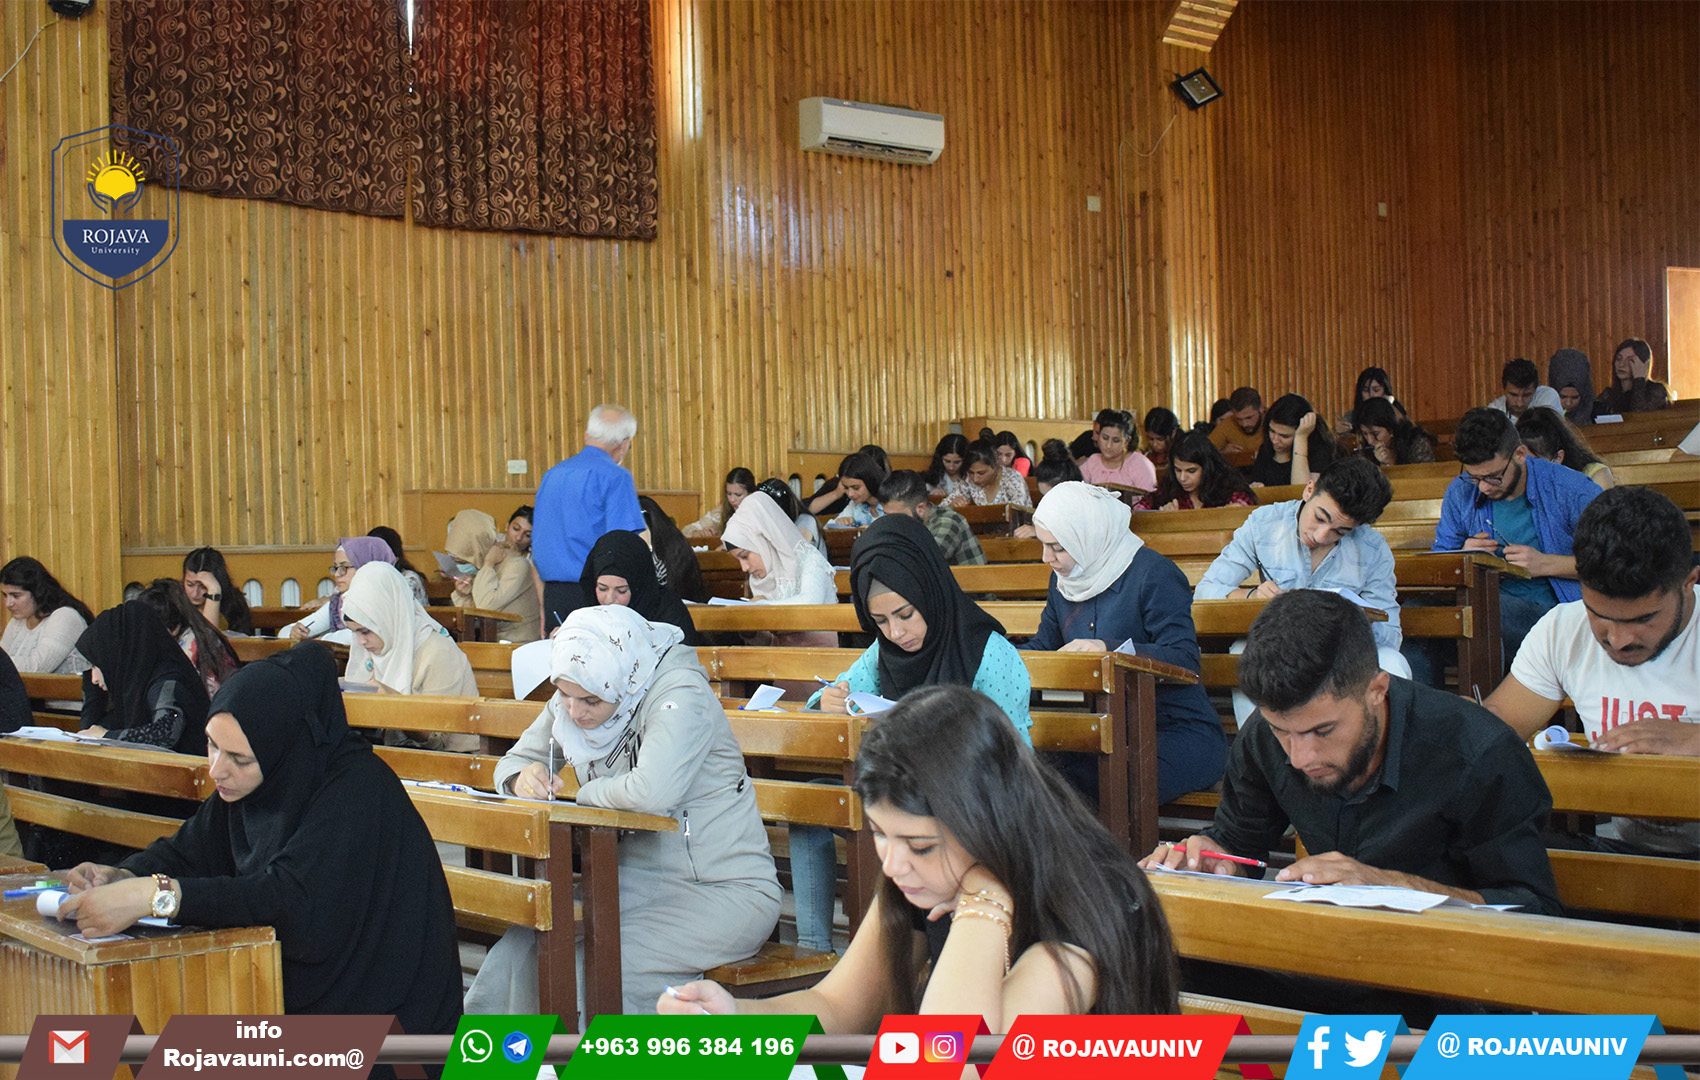 Students continue to take entrance exams for the second day